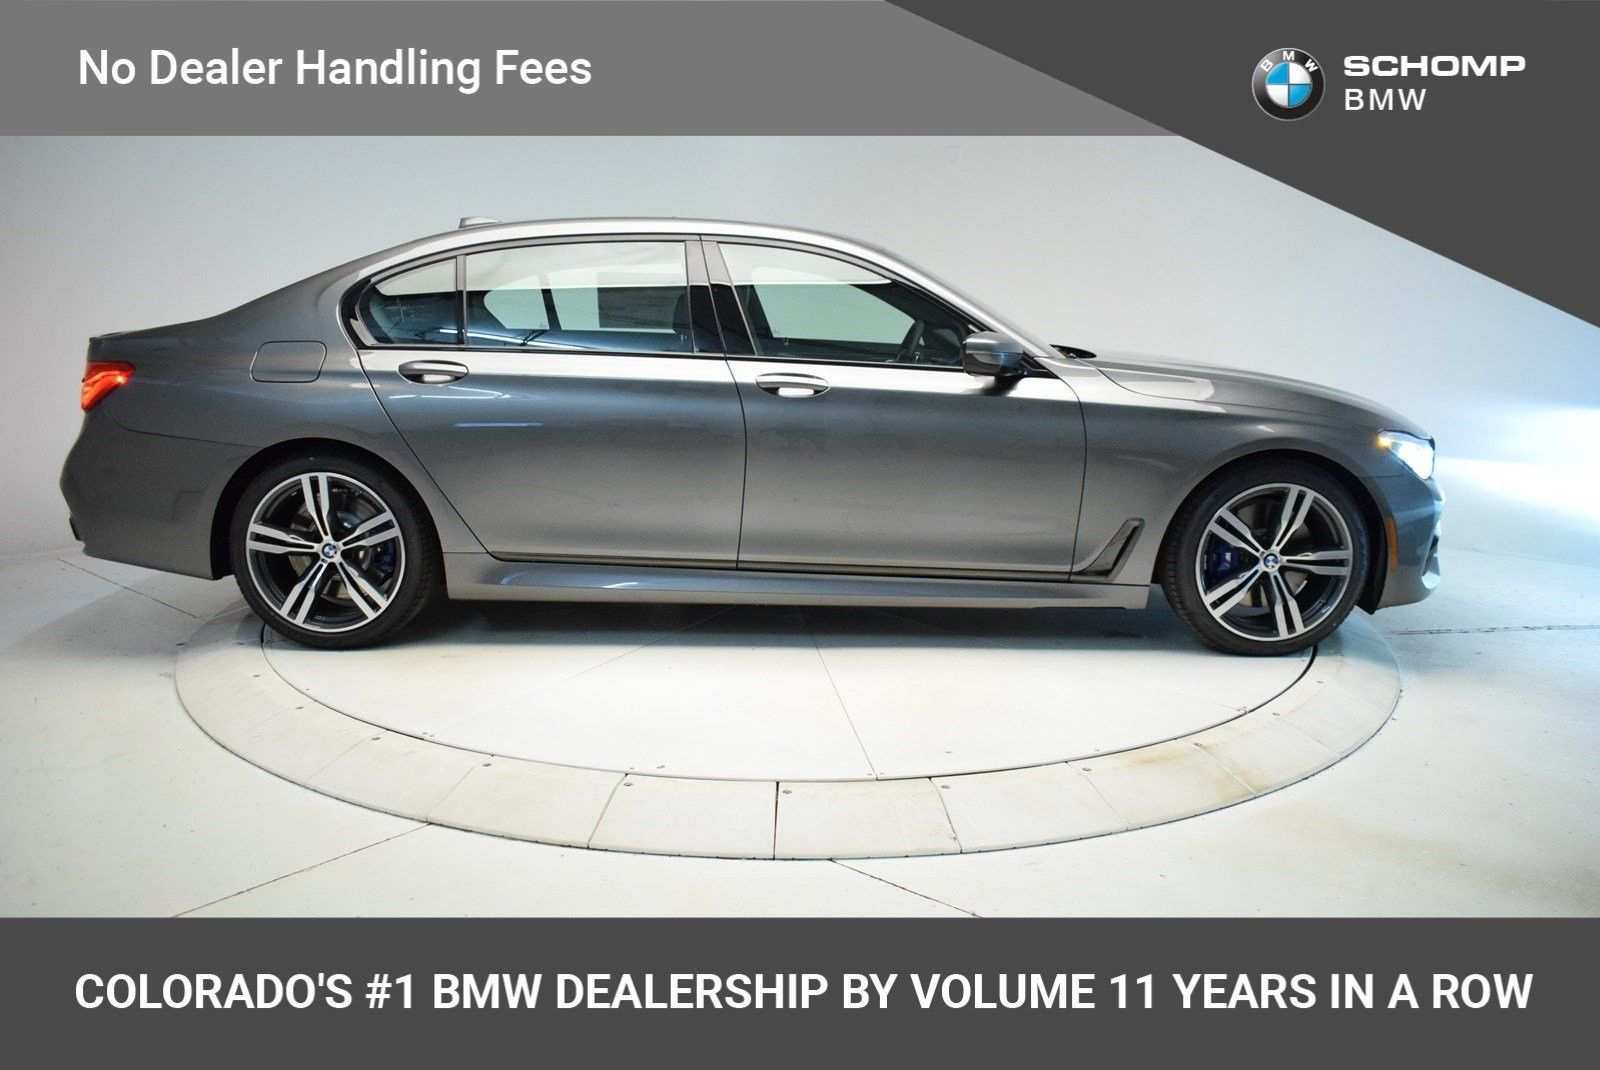 20 All New 2019 Bmw 5500 Hd Prices